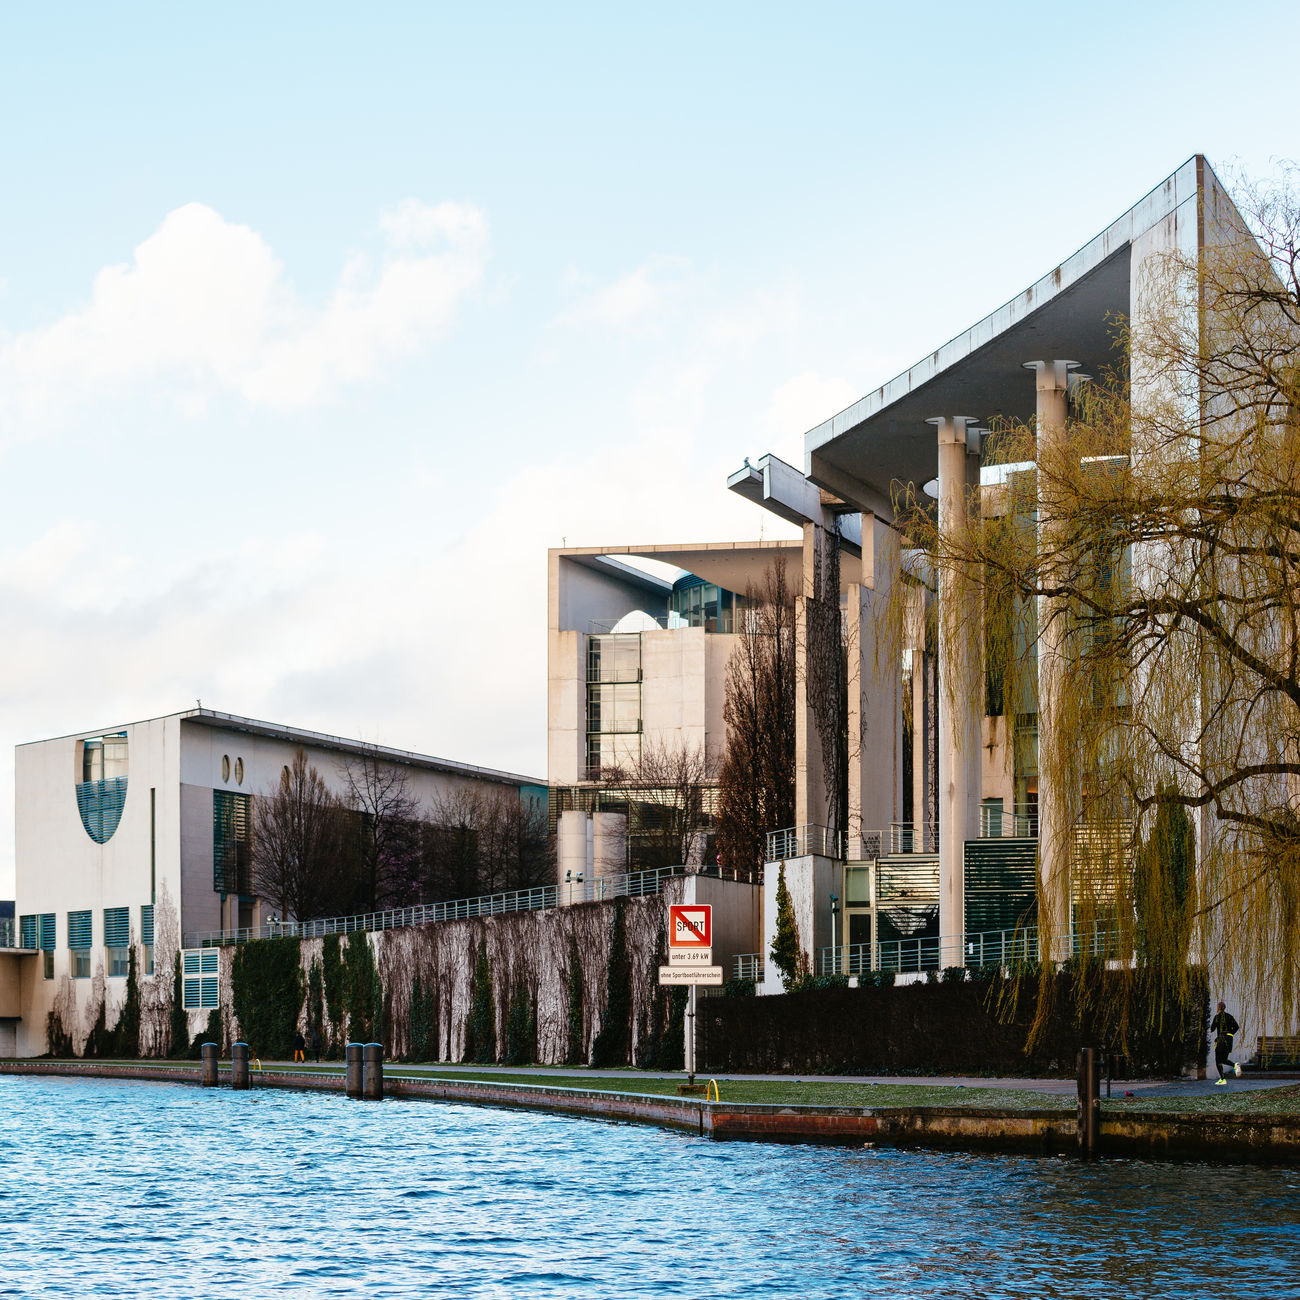 Architecture Building City Kanzleramt Berlin River Spree Water Waterfront